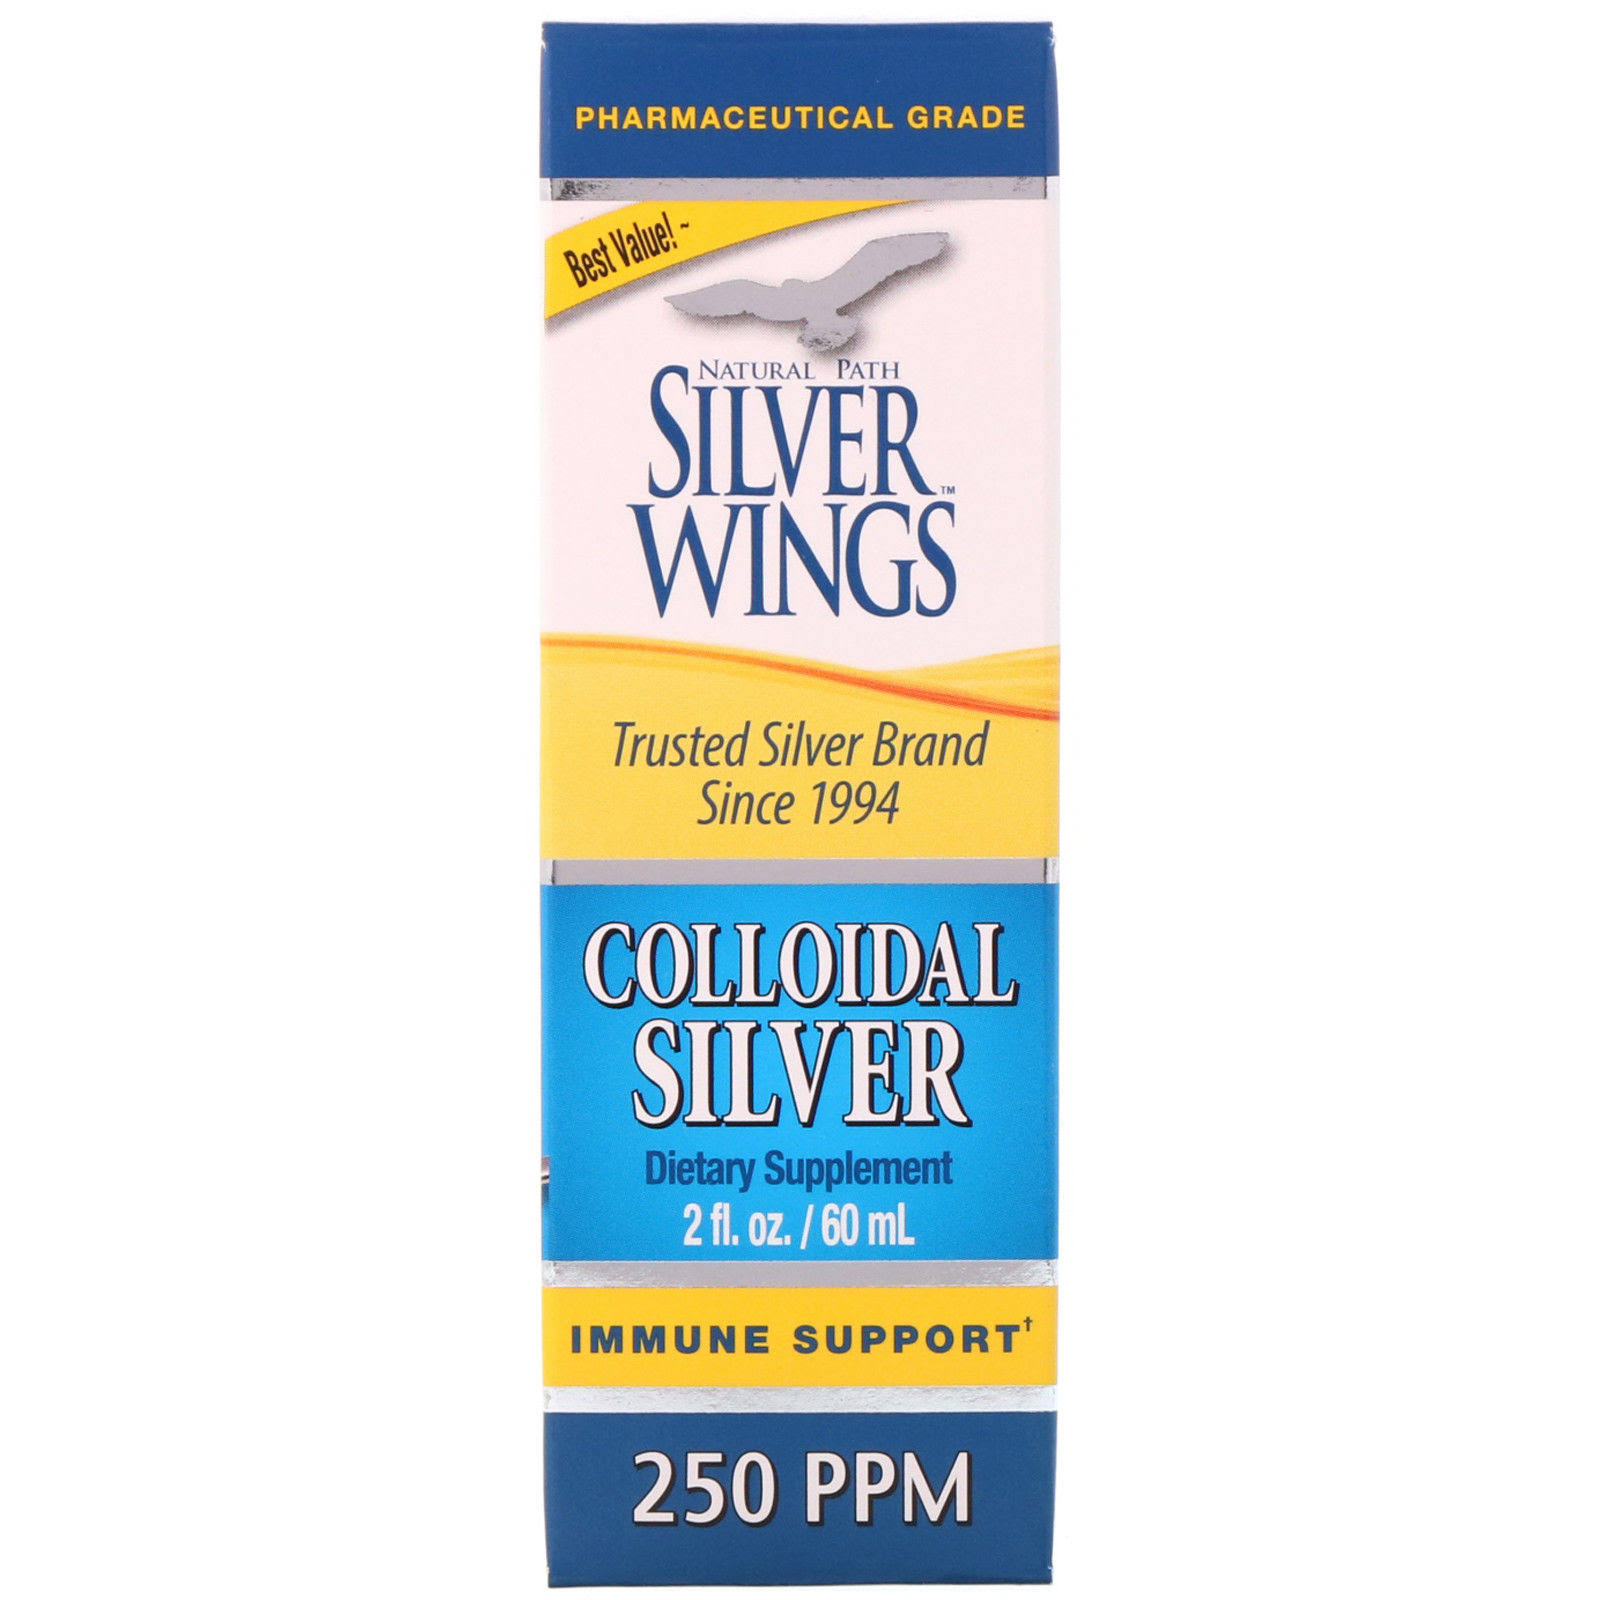 Natural Path Silver Wings Colloidal Silver - 250ppm, 500ml